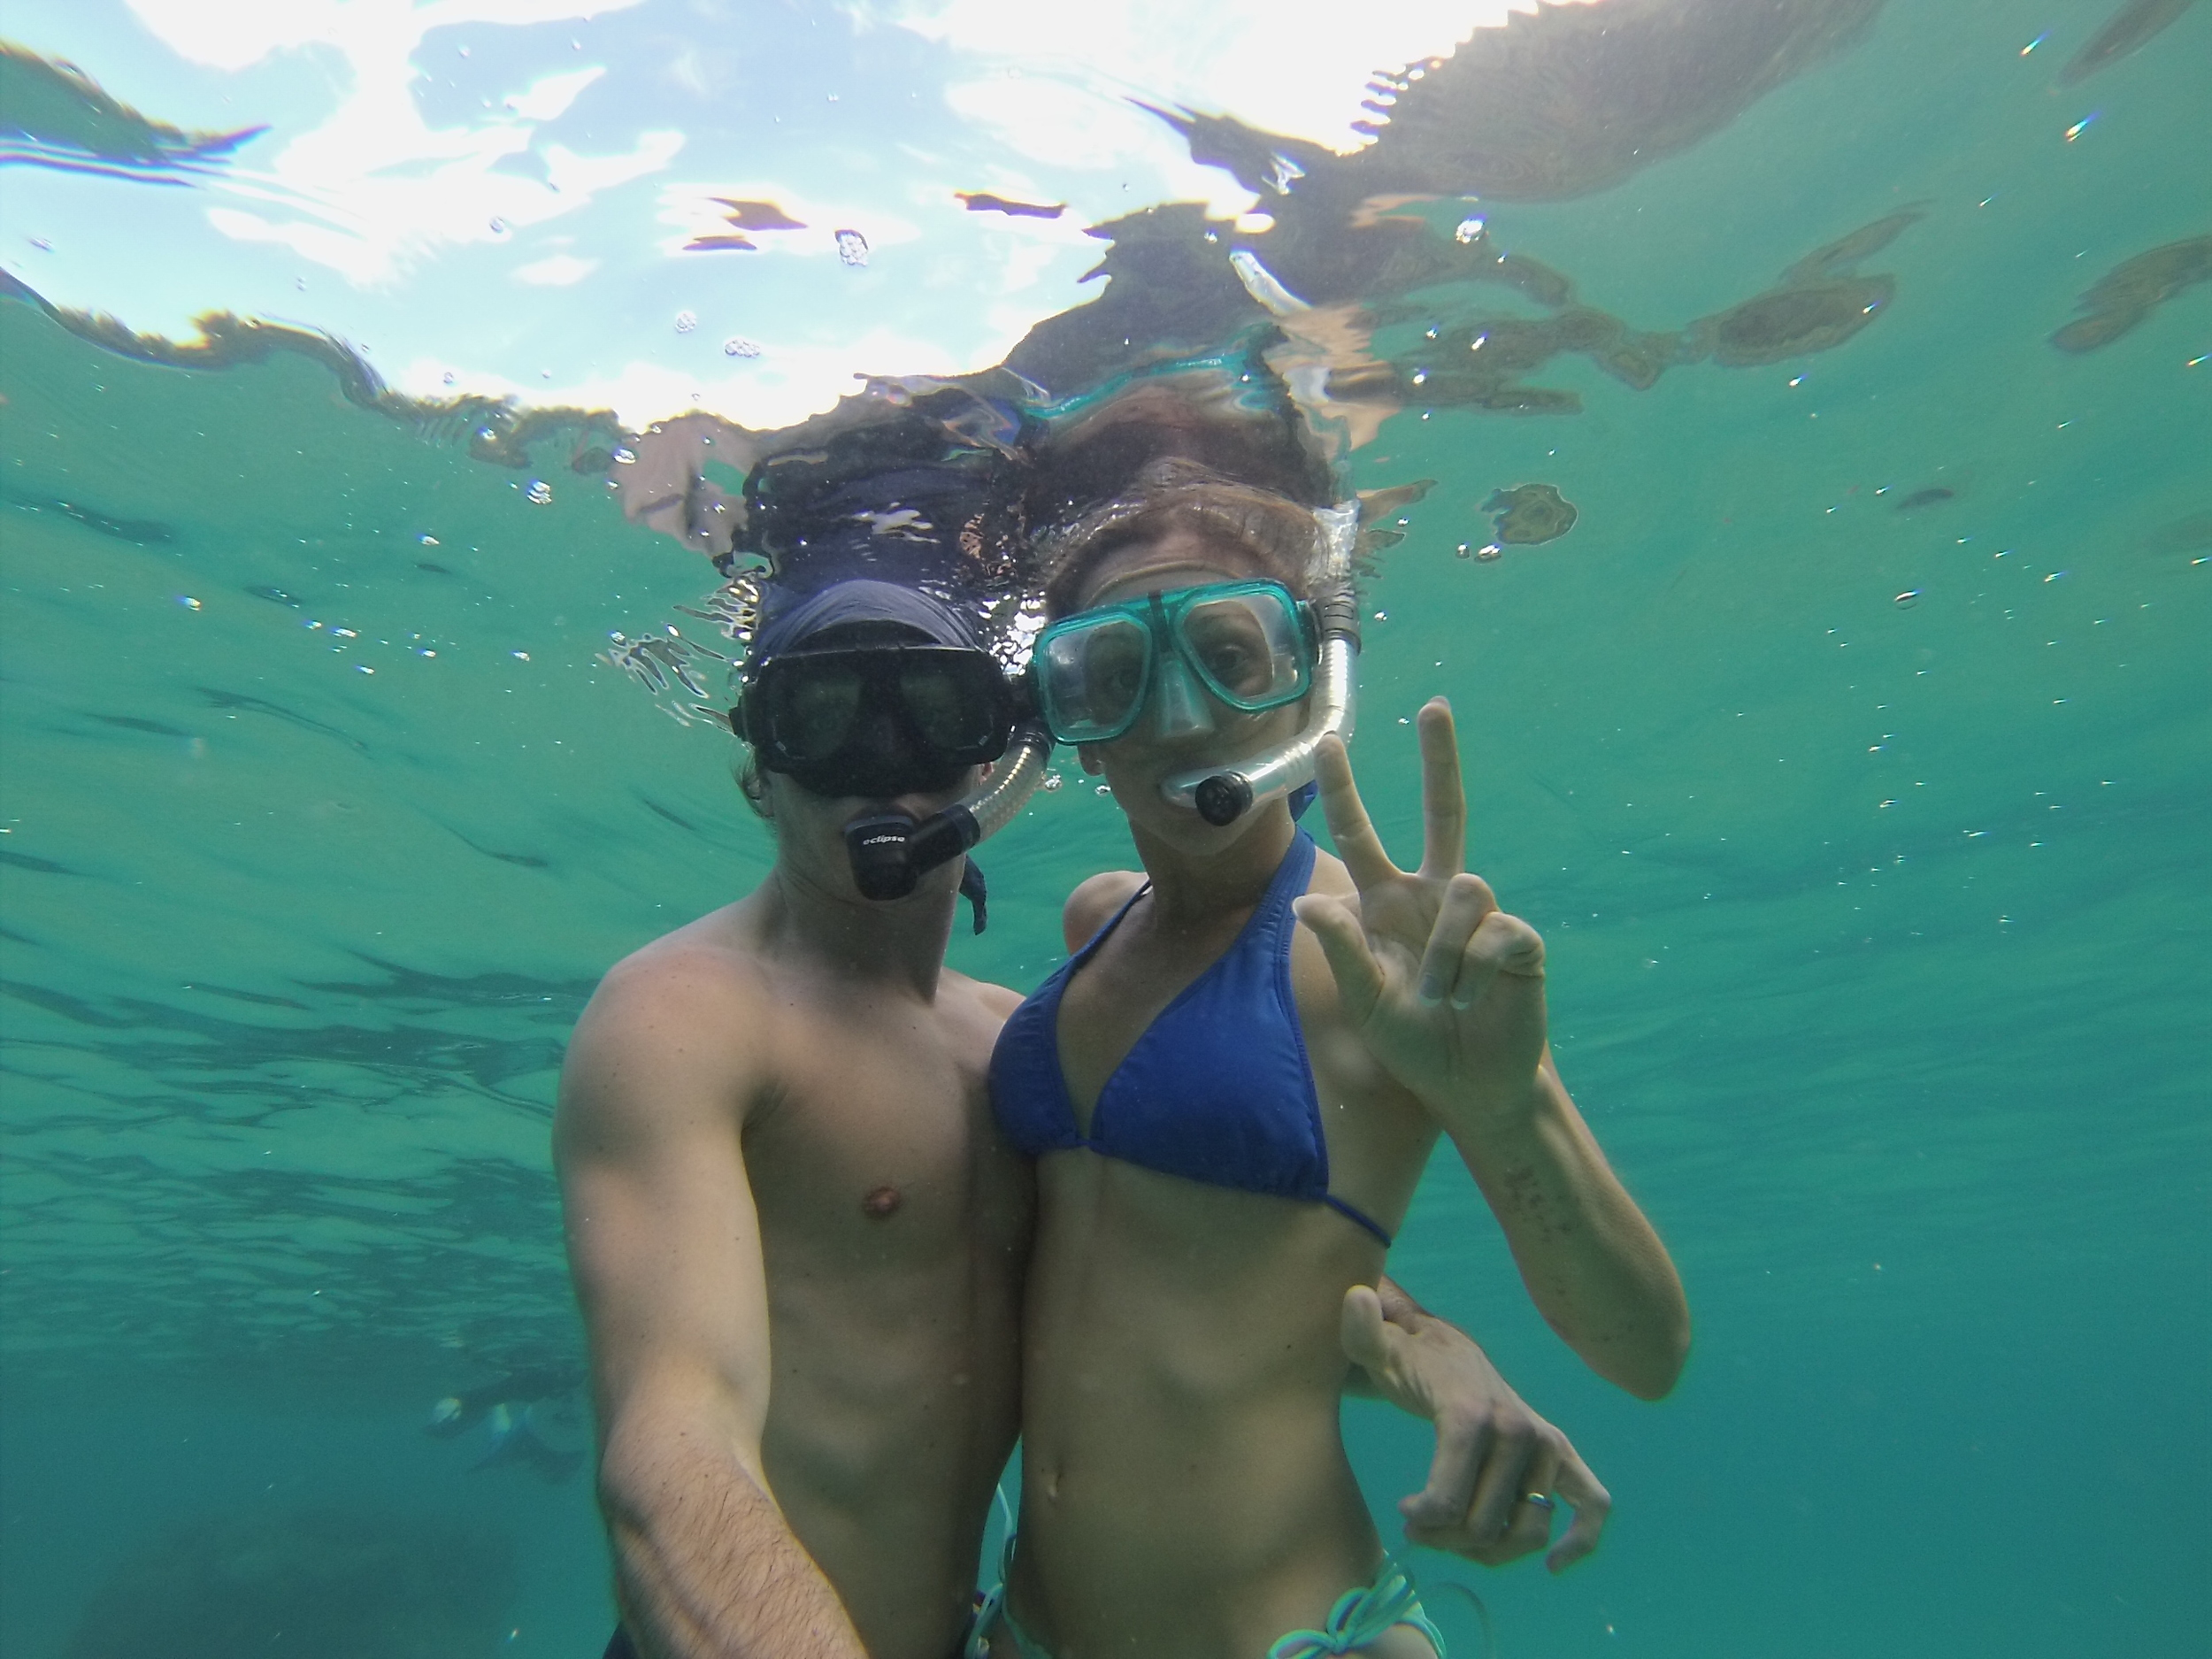 Livin' it up in the warm tropical waters of Hawaii!!